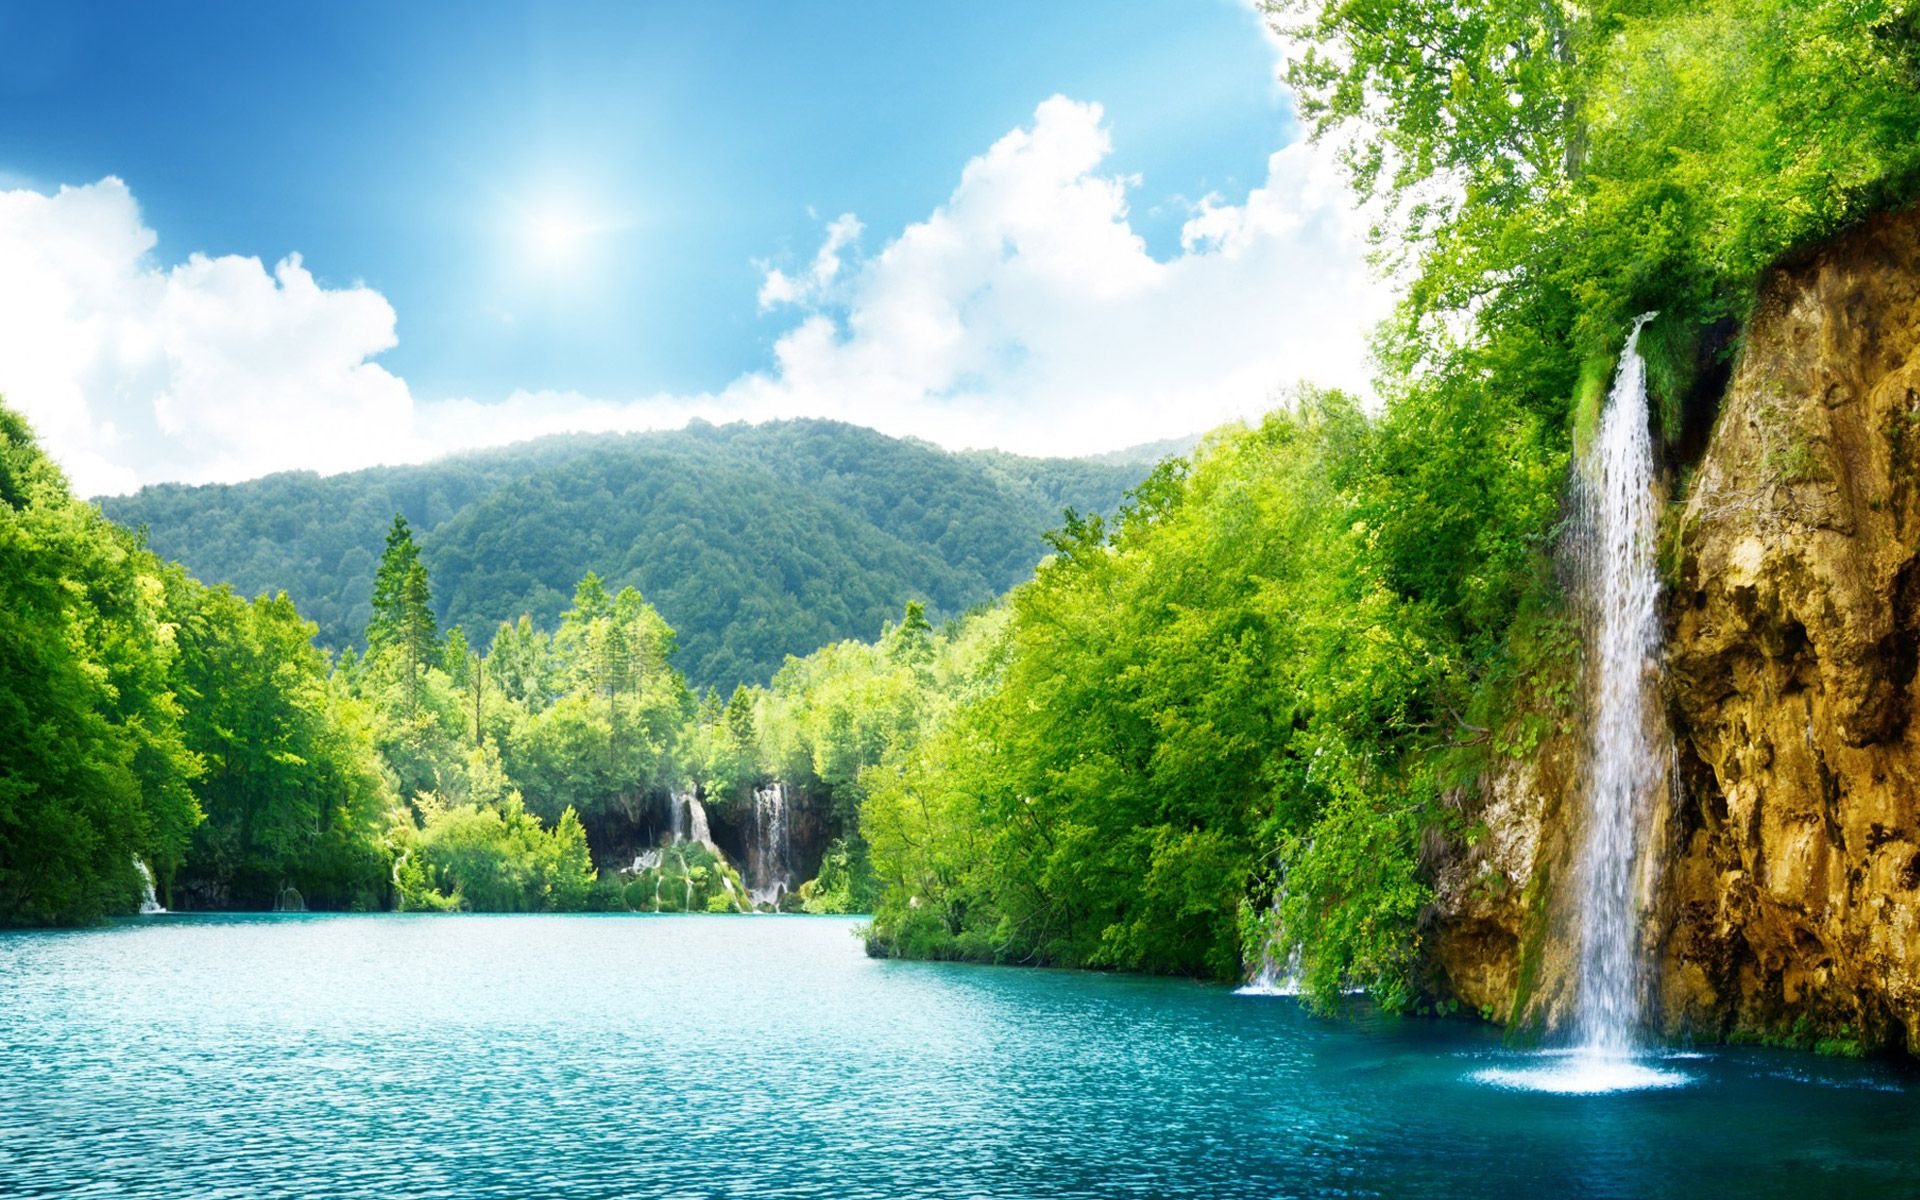 HD Landscape Nature Wallpapers Find best latest HD